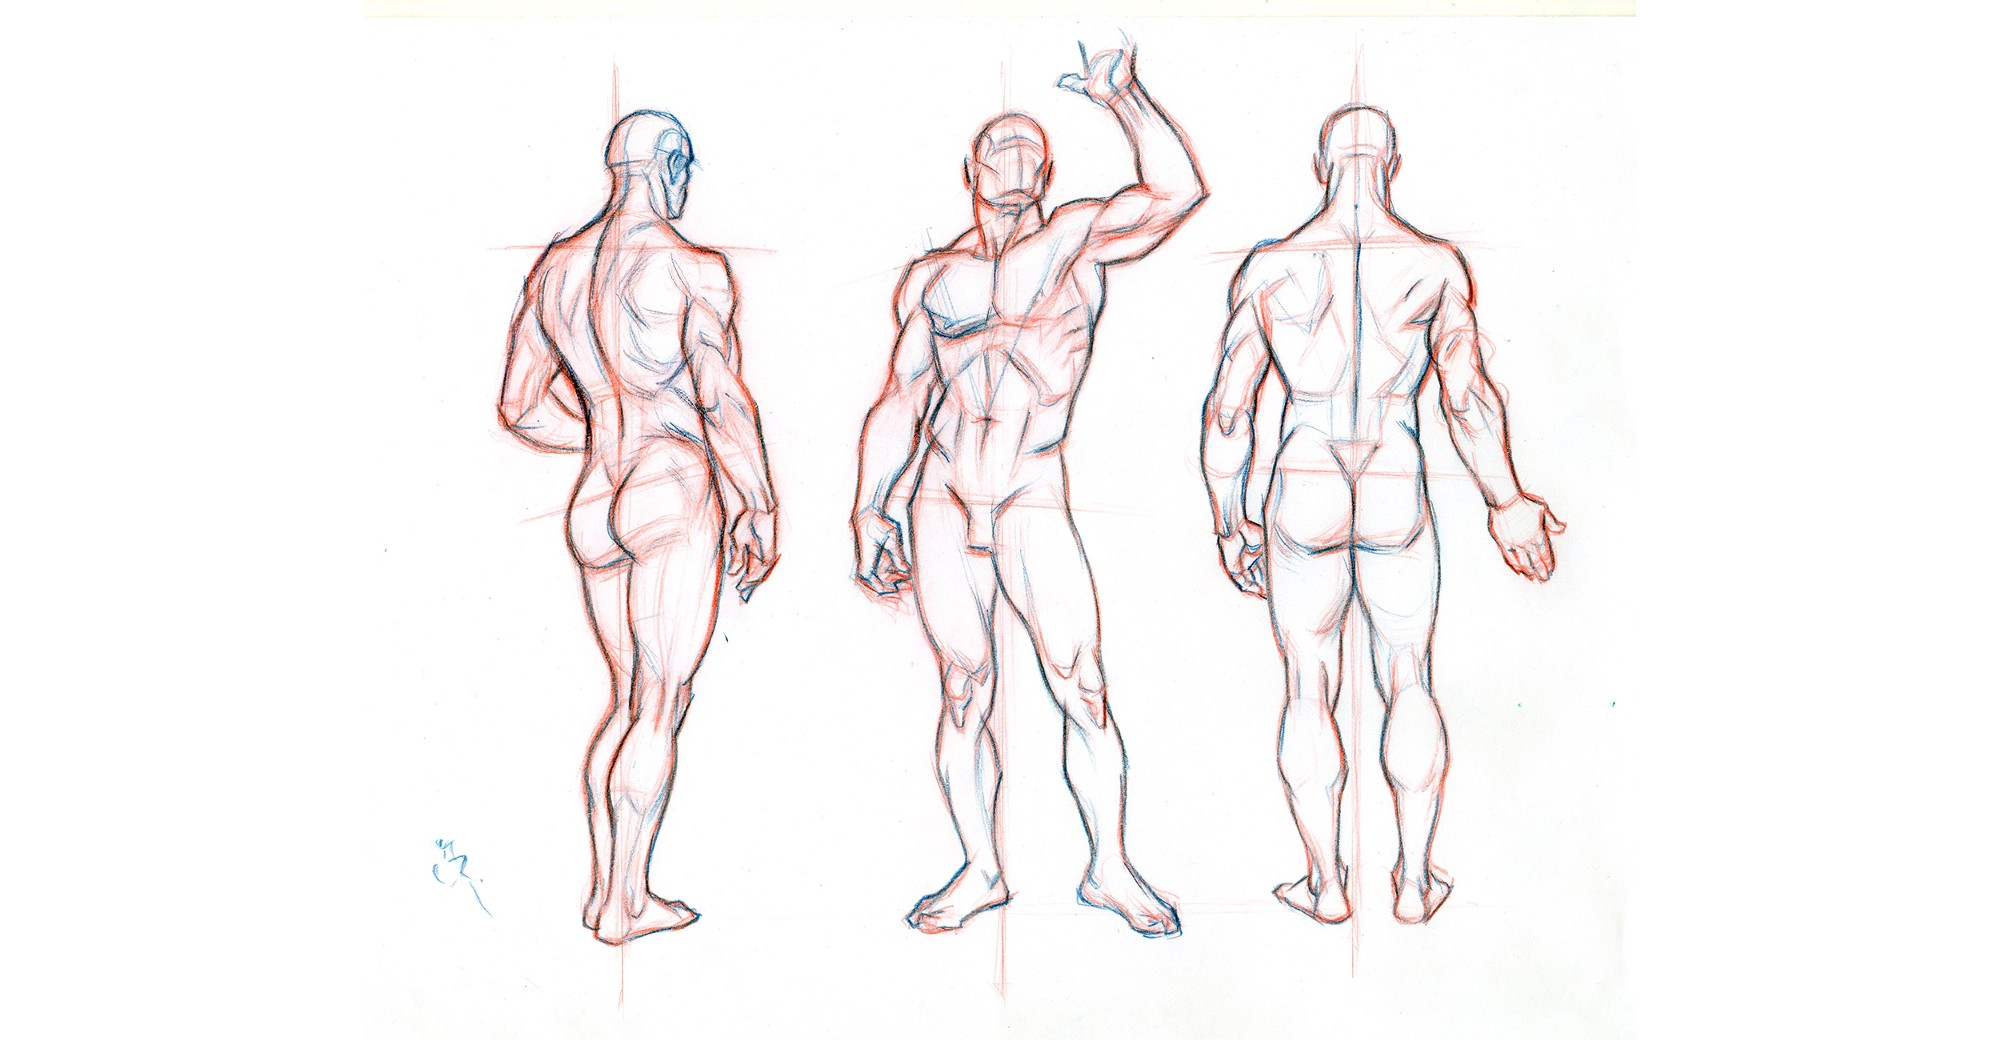 Beginners guide importance of proper body proportions and how to get them right